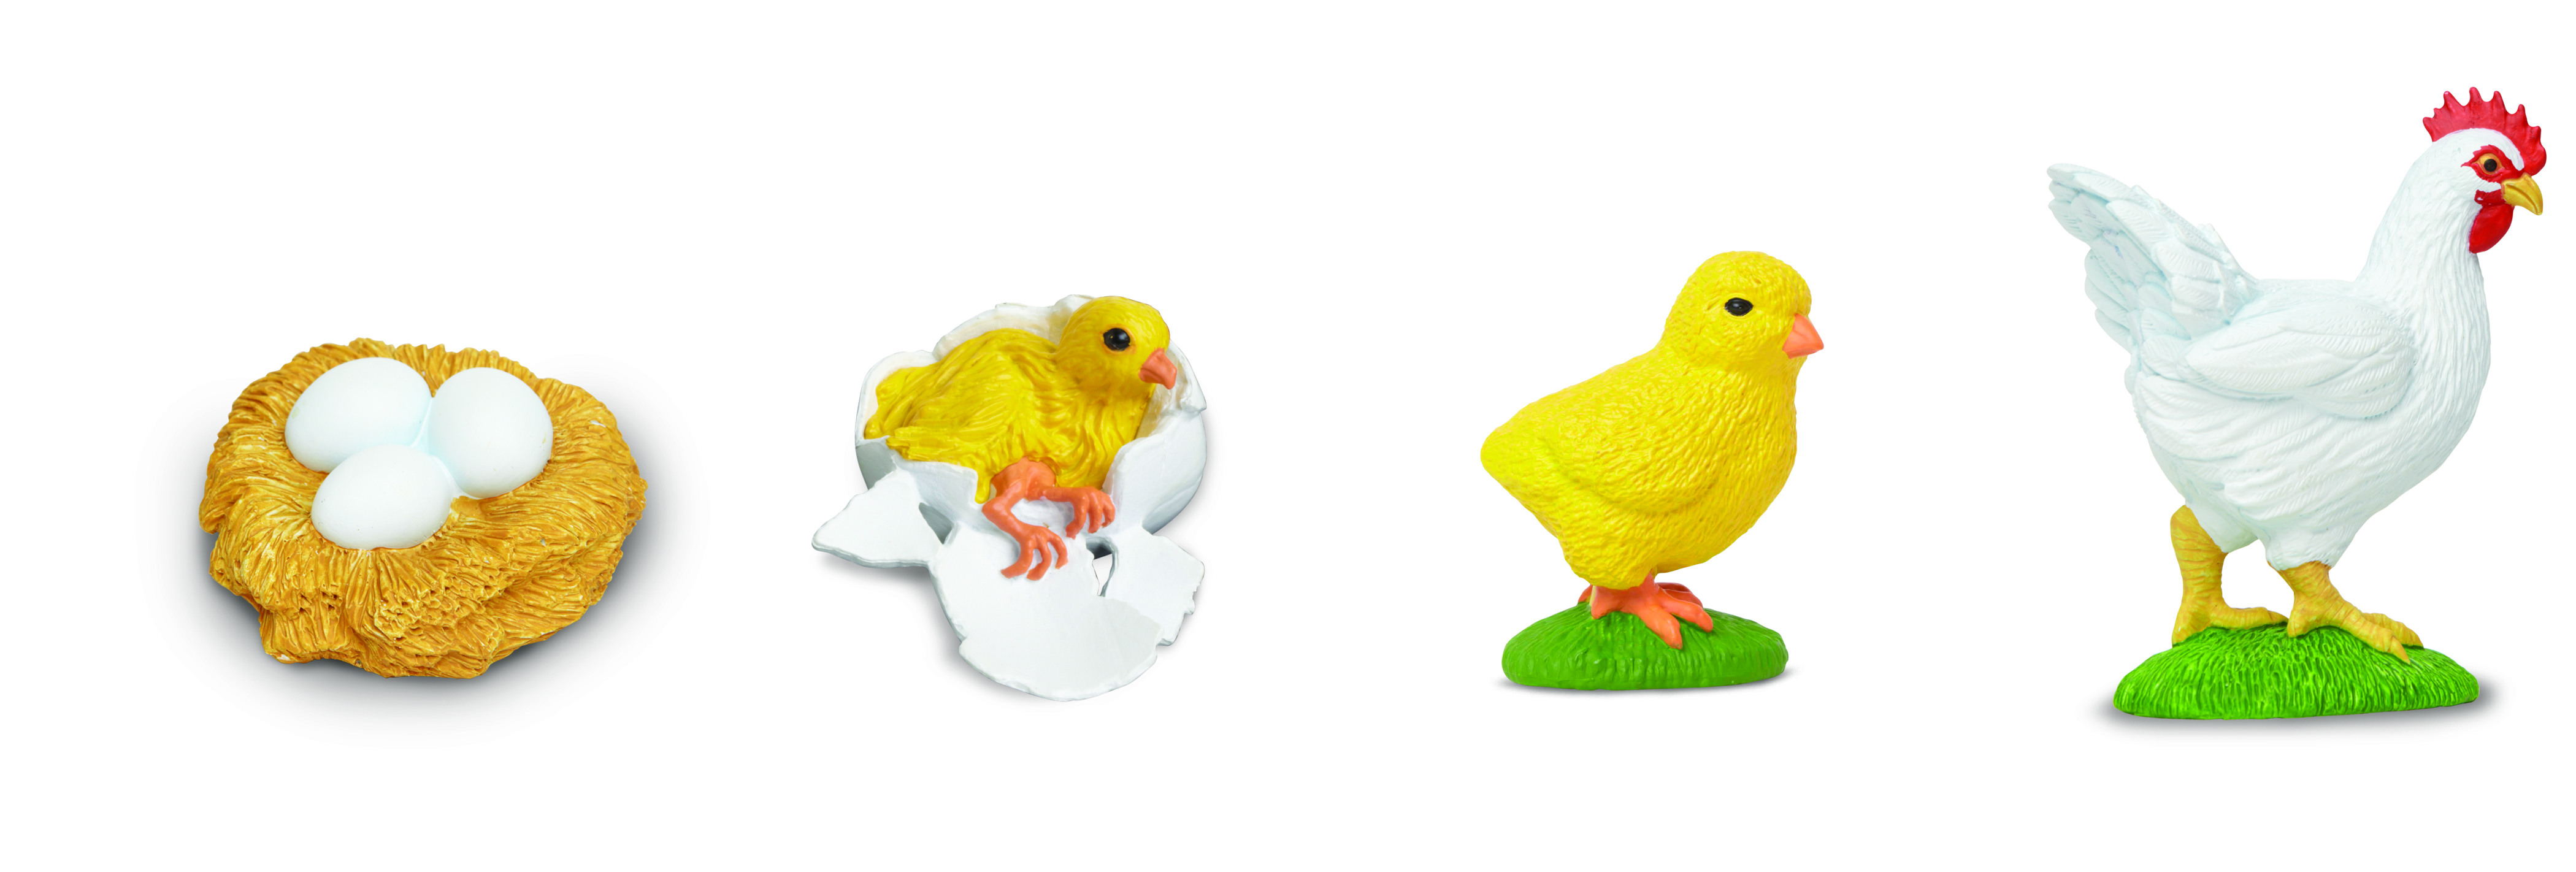 Free Toy Chicken Cliparts Download Free Clip Art Free